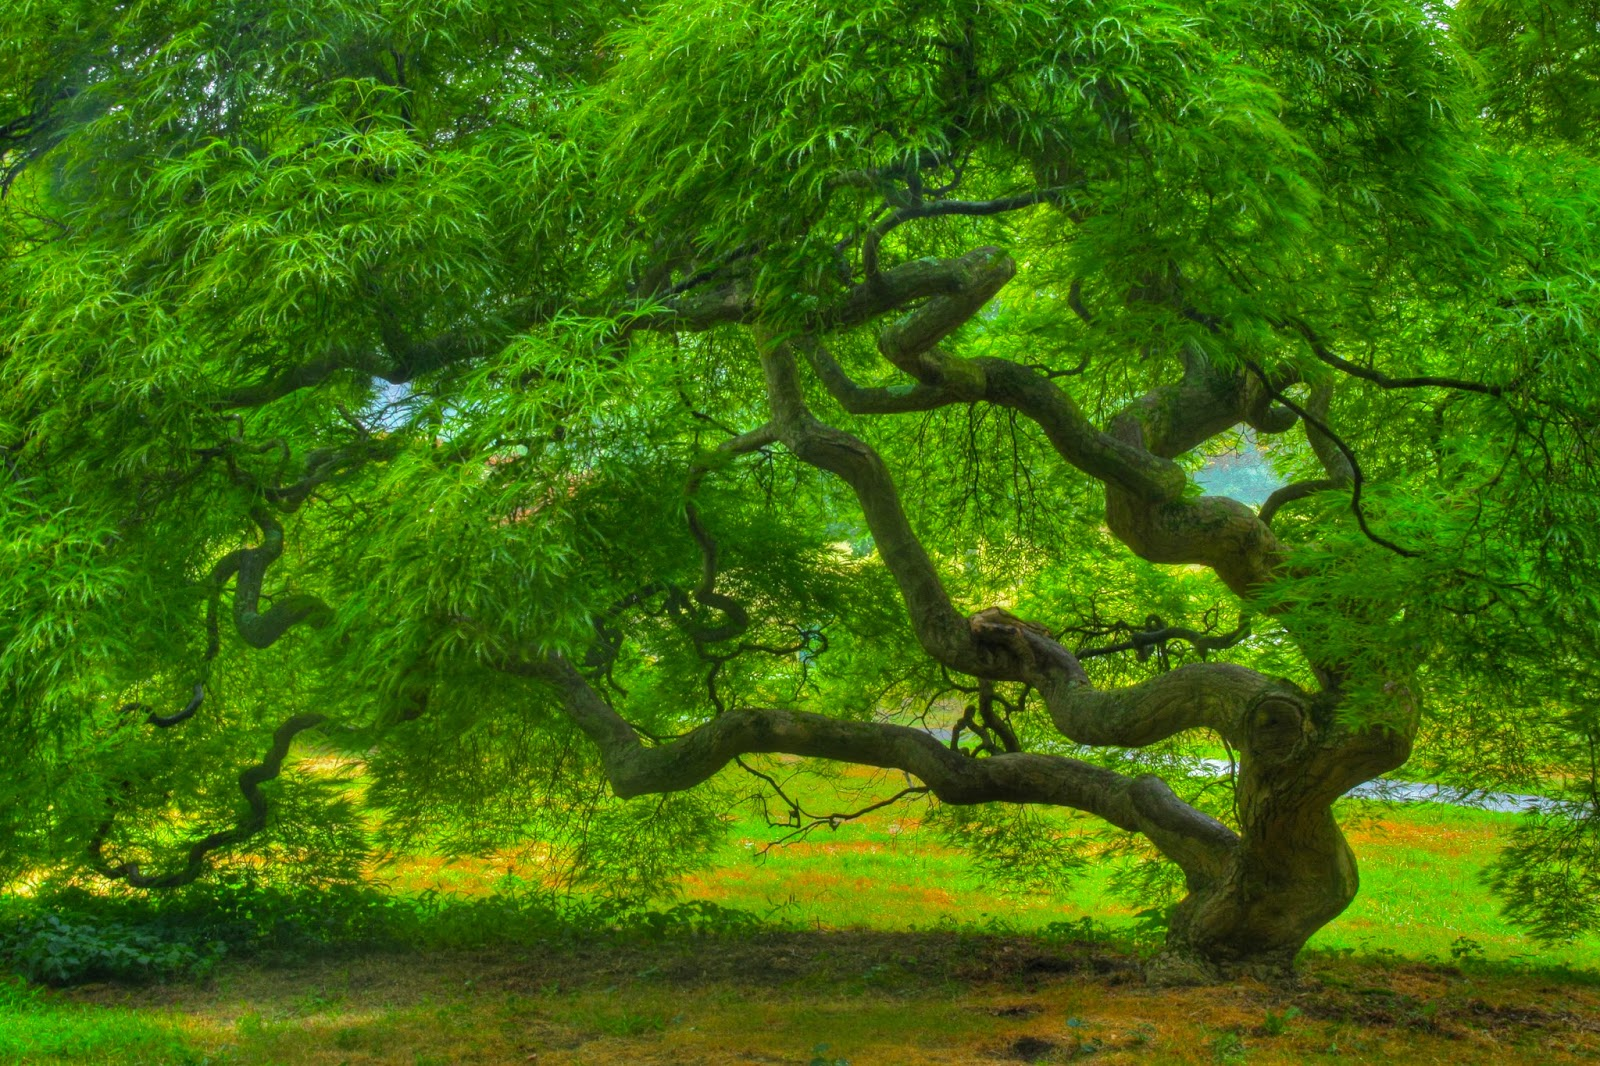 Full Hd Nature Wallpaper With Japanese Maple Tree Hd